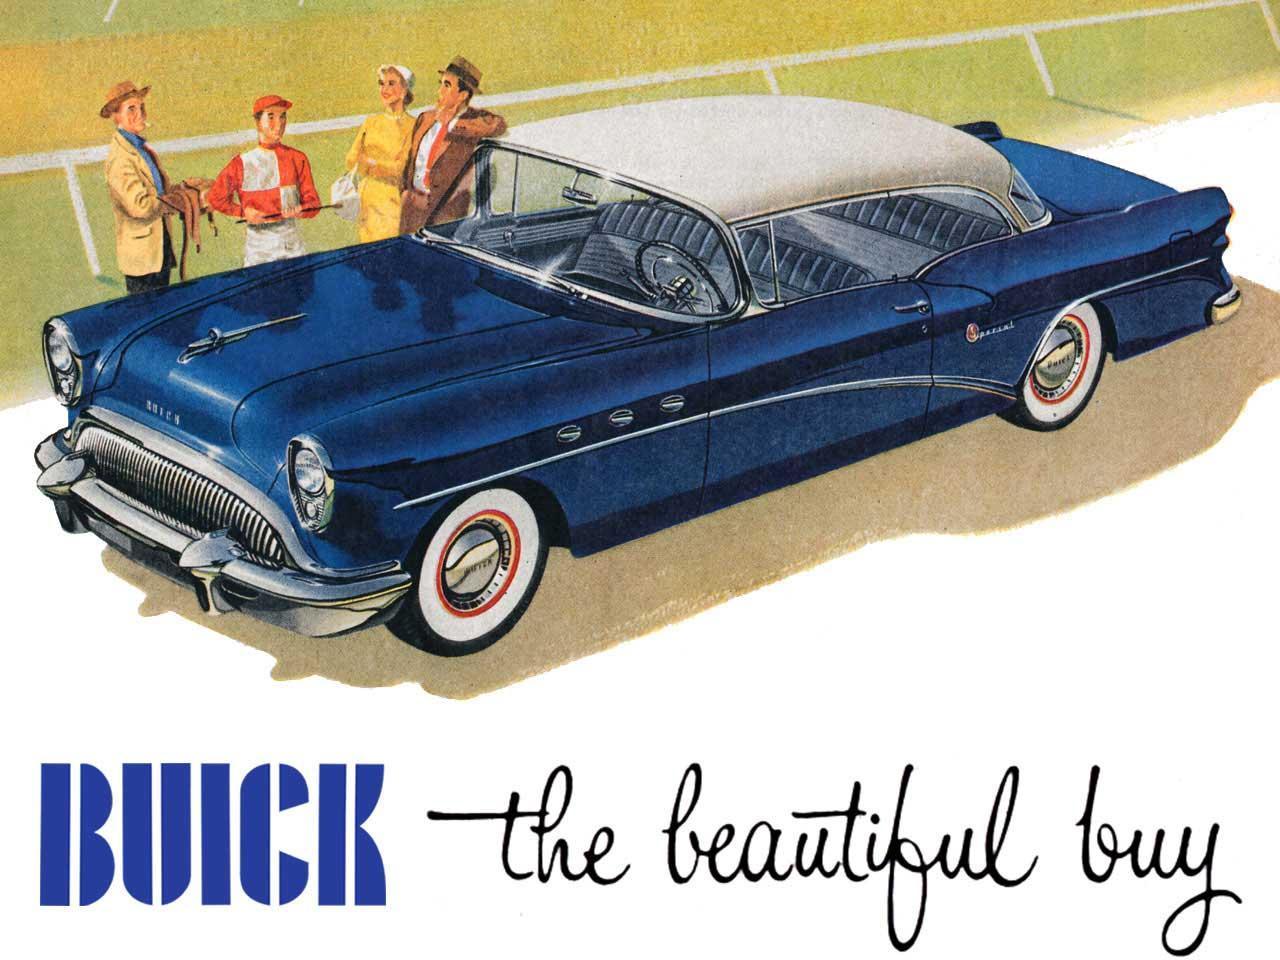 1954 Buick - The Beautiful Buy